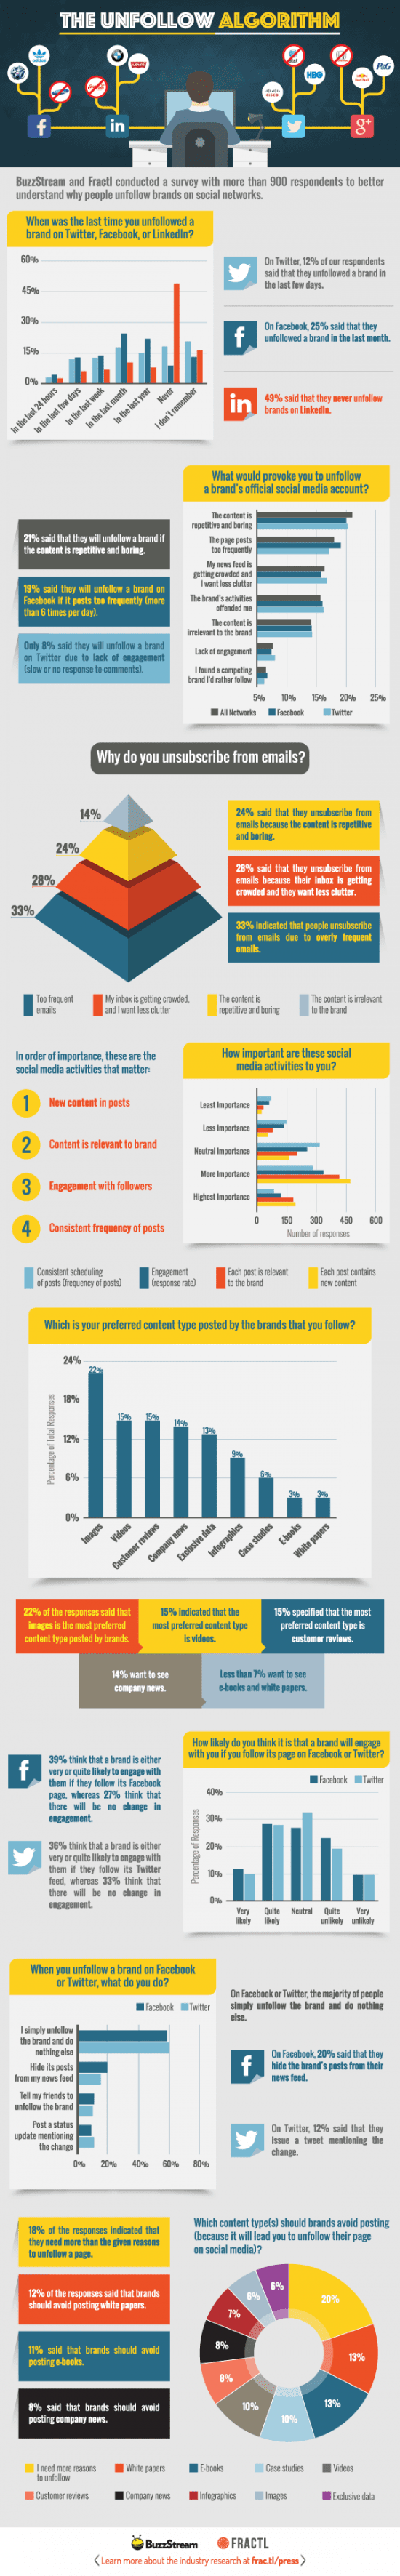 Social media - why people unfollow Infographic